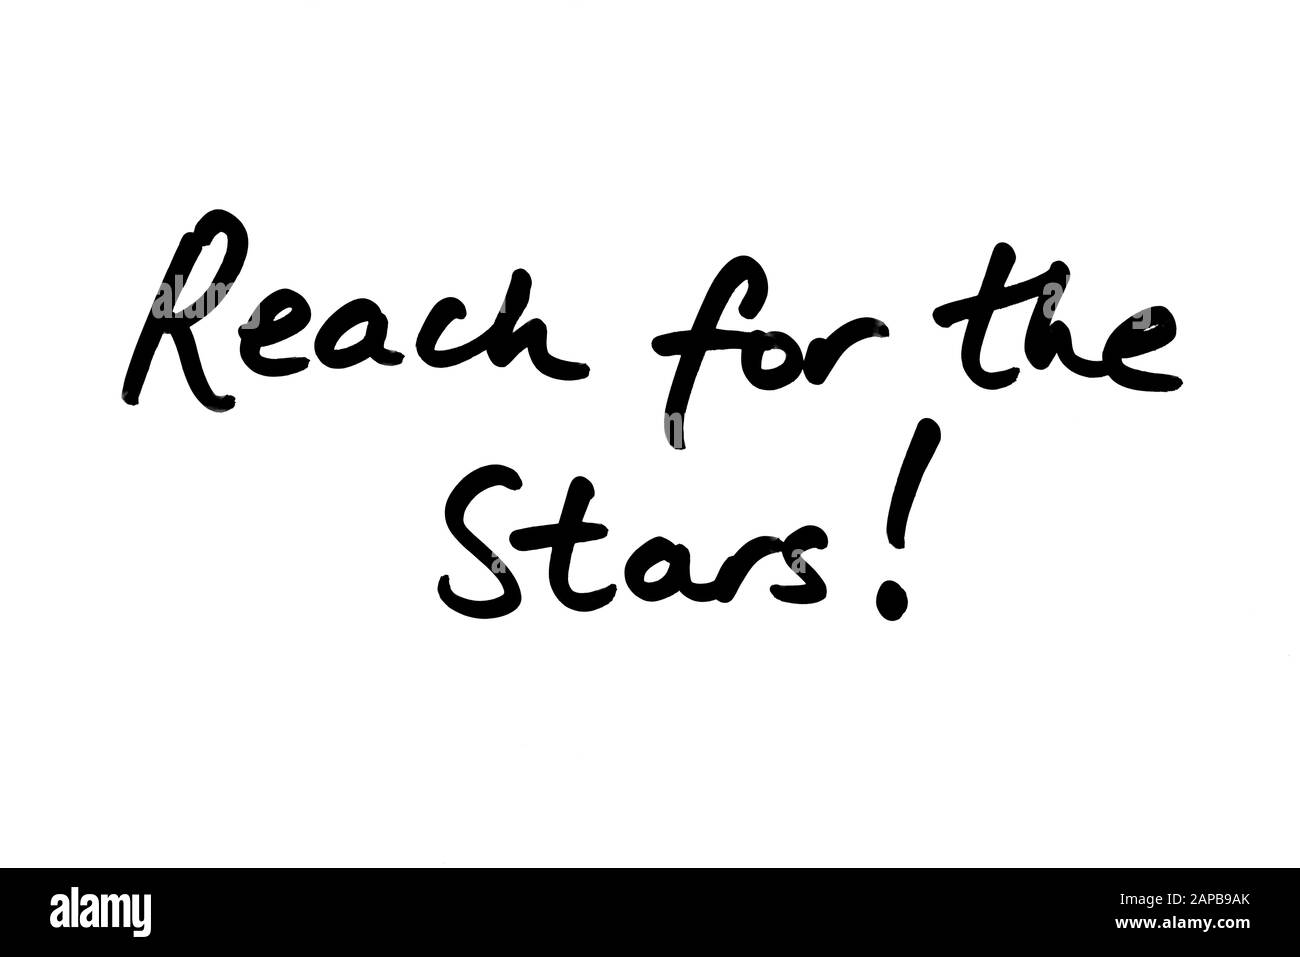 Reach for the Stars! handwritten on a white background. Stock Photo